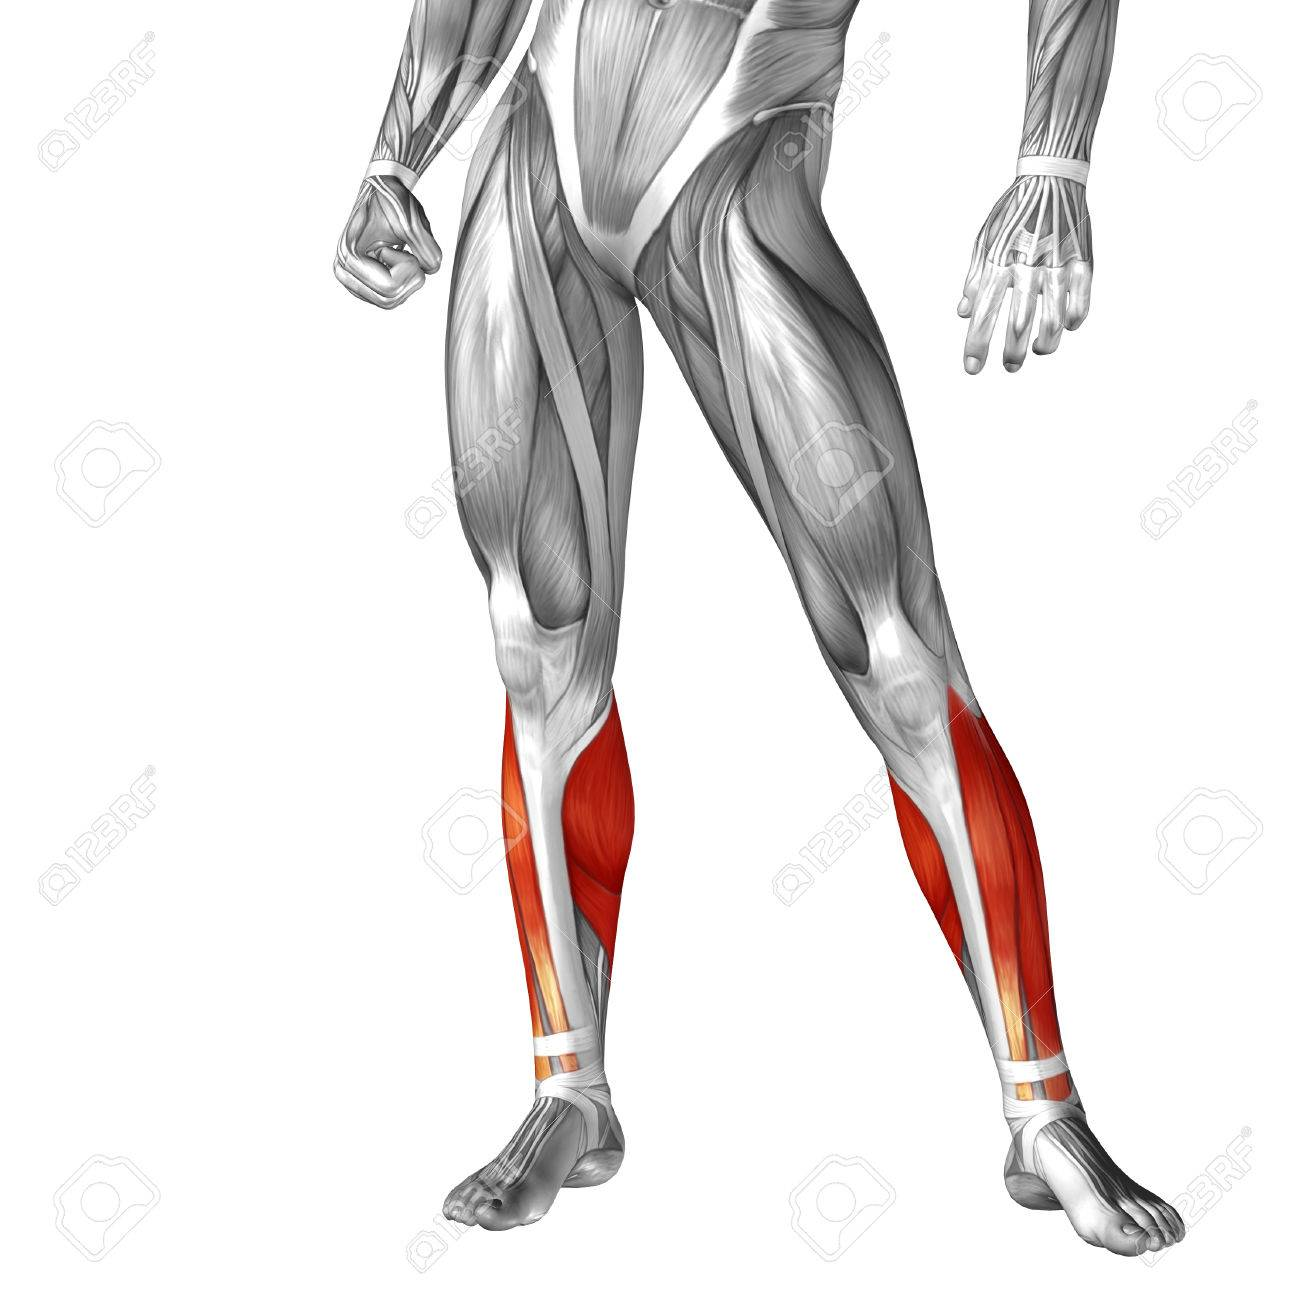 Unique Lower Body Muscle Anatomy Ideas - Human Anatomy Images ...